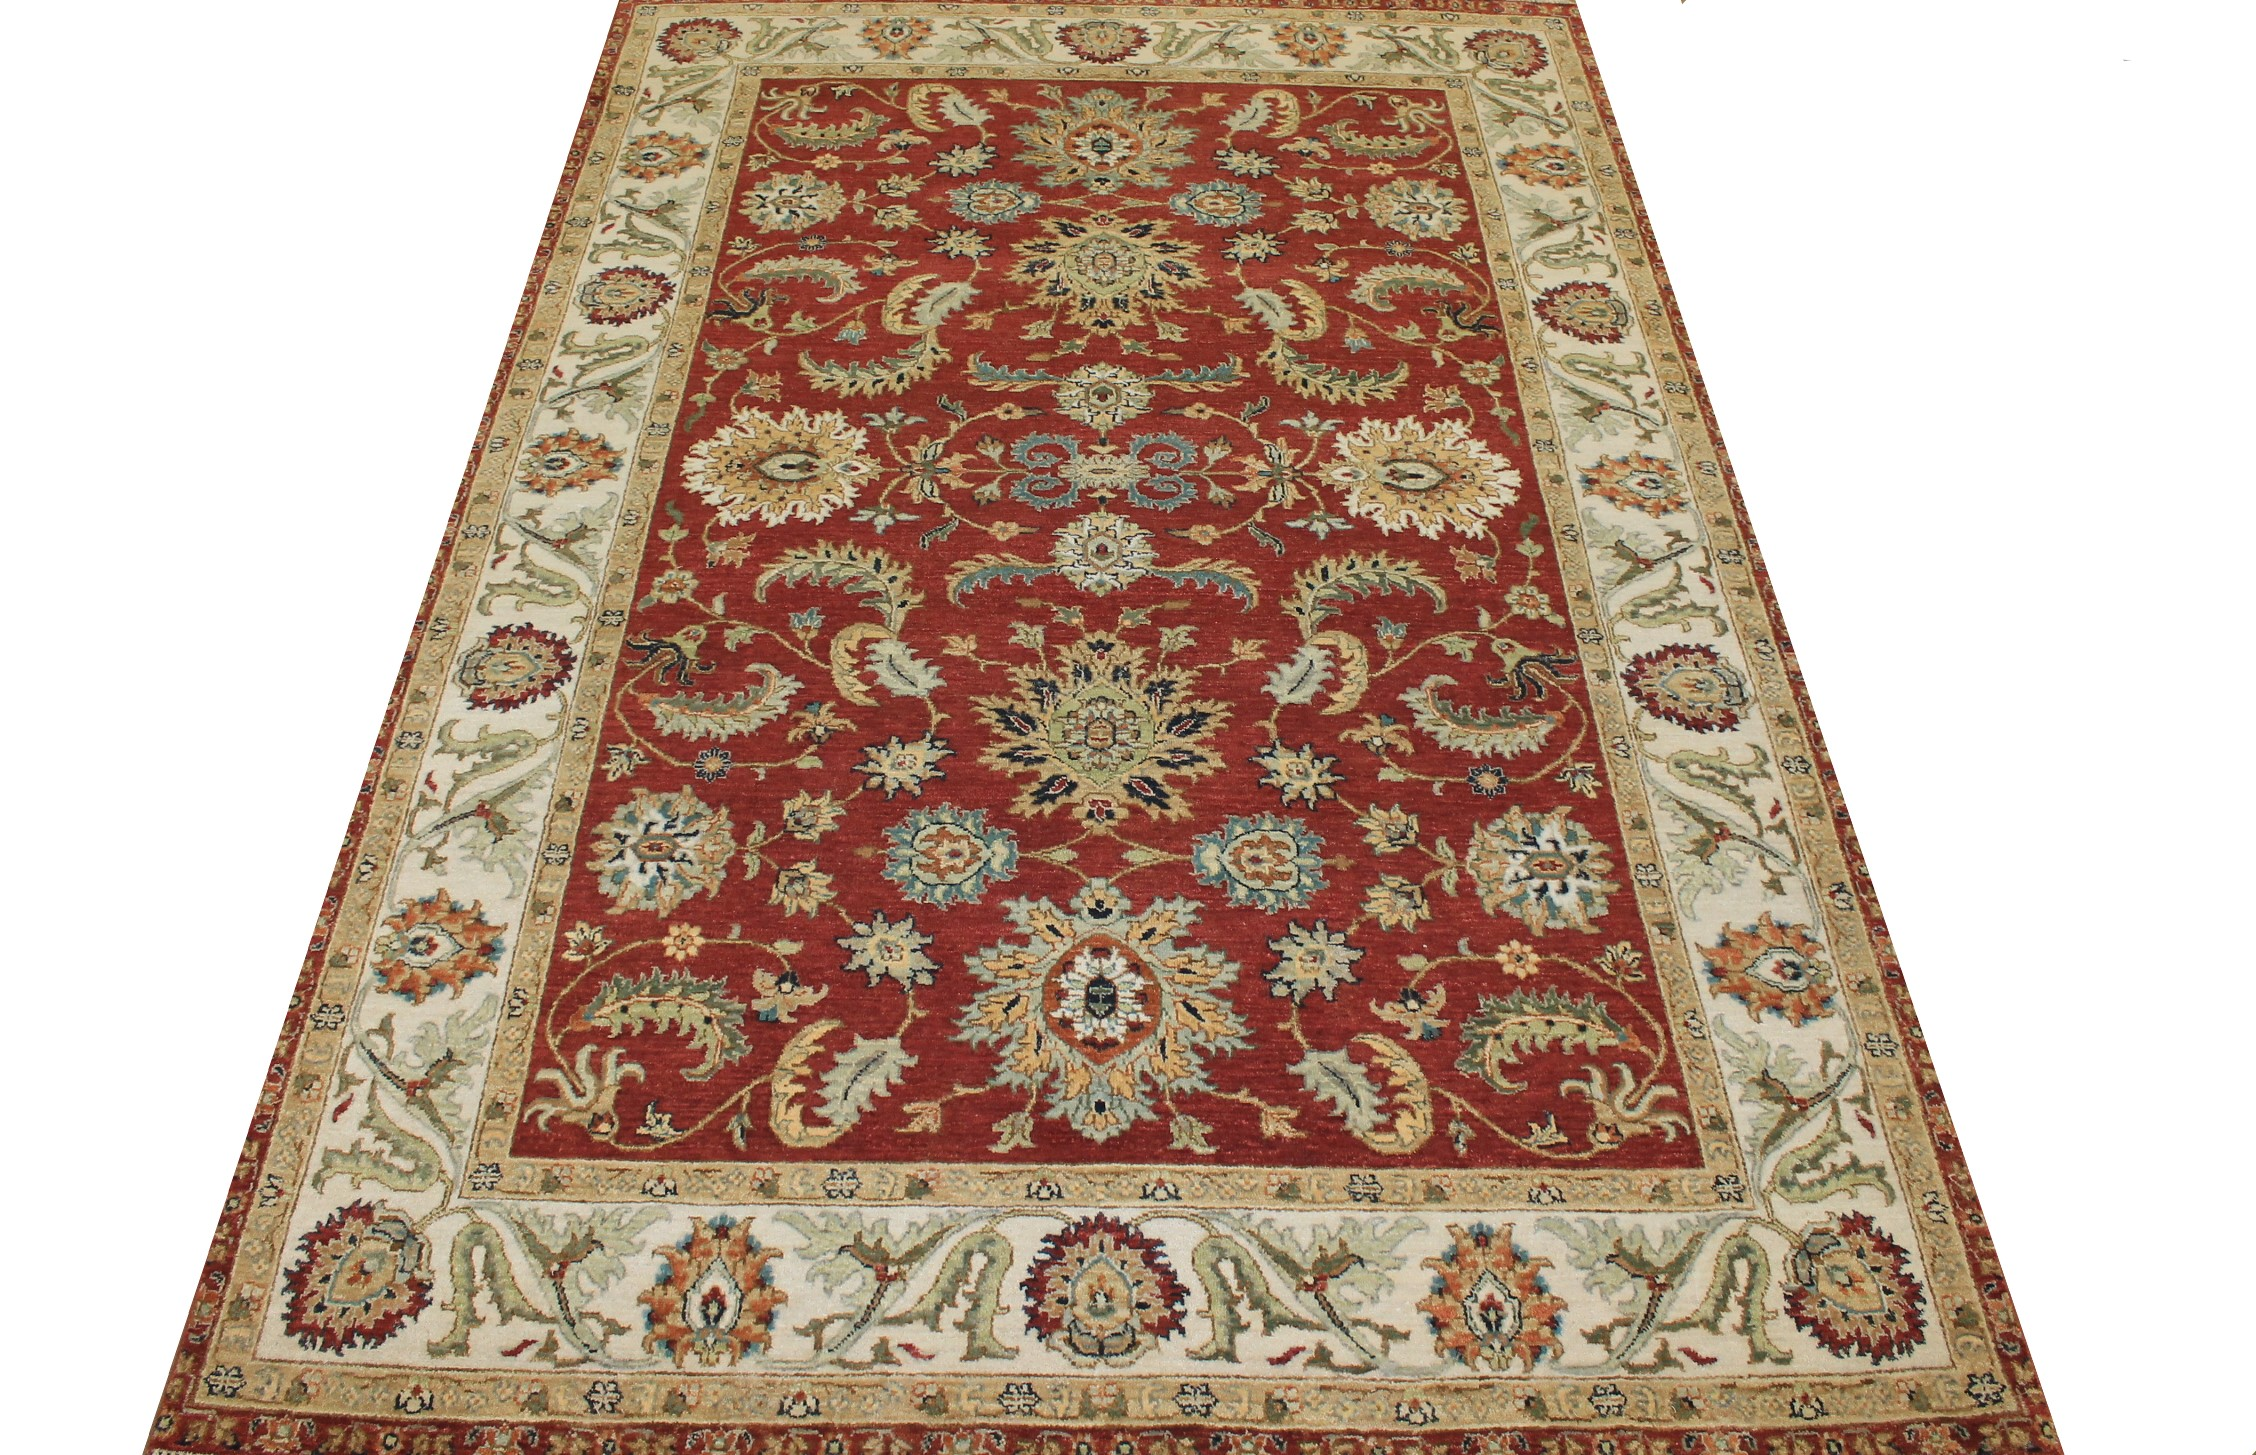 6x9 Traditional Hand Knotted Wool Area Rug - MR024941